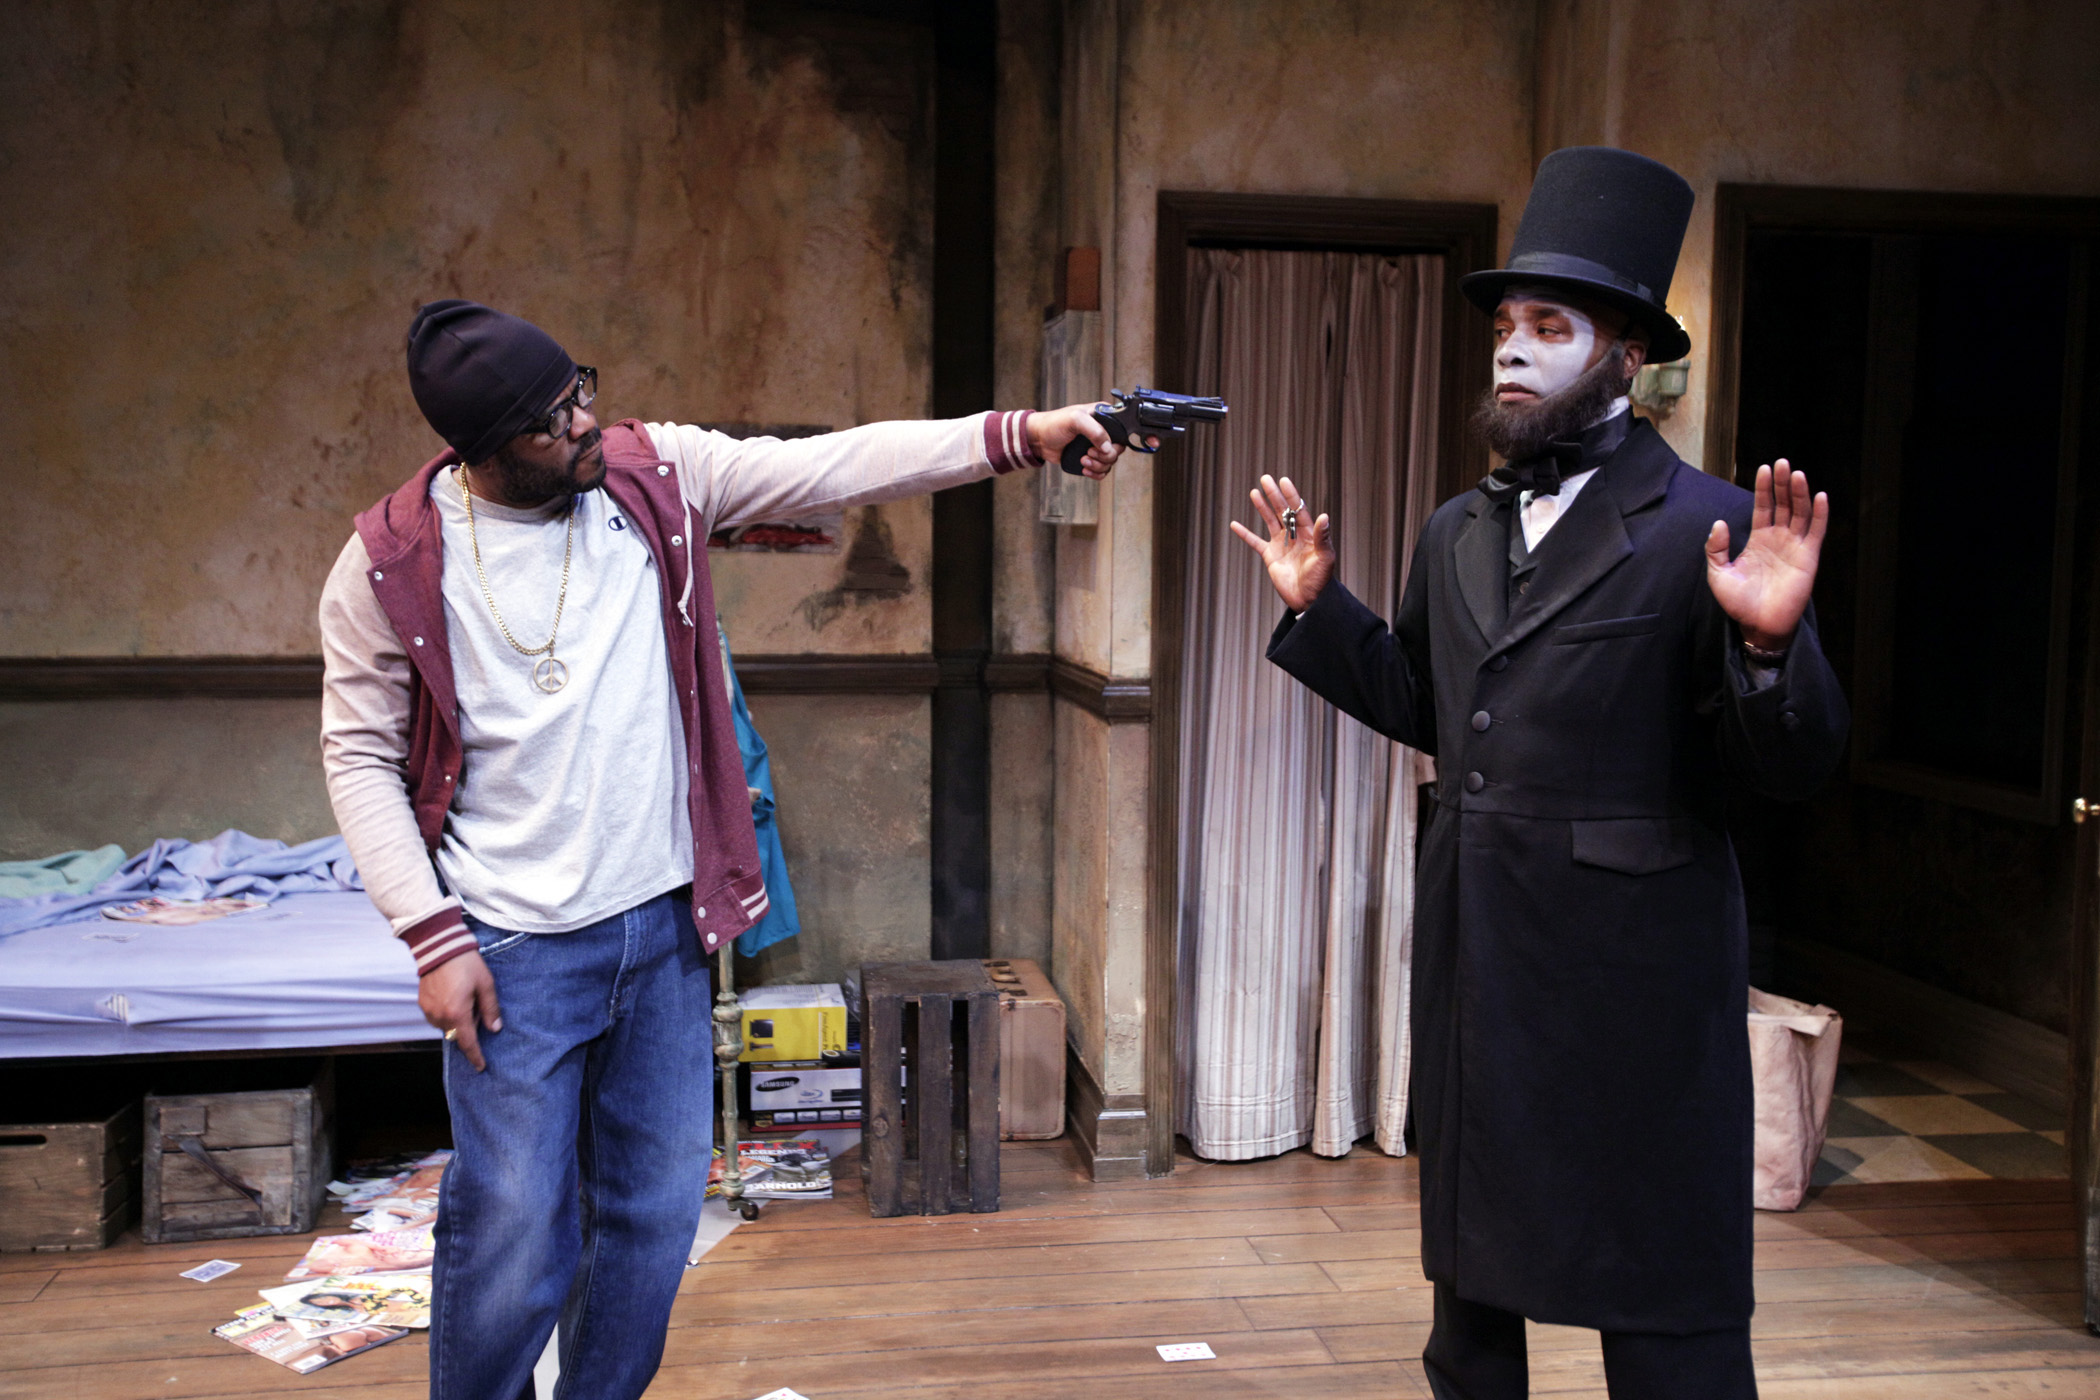 A Dramaturgical Response to Concerning Elements in Topodog/Underdog by Suzan-Lori Parks